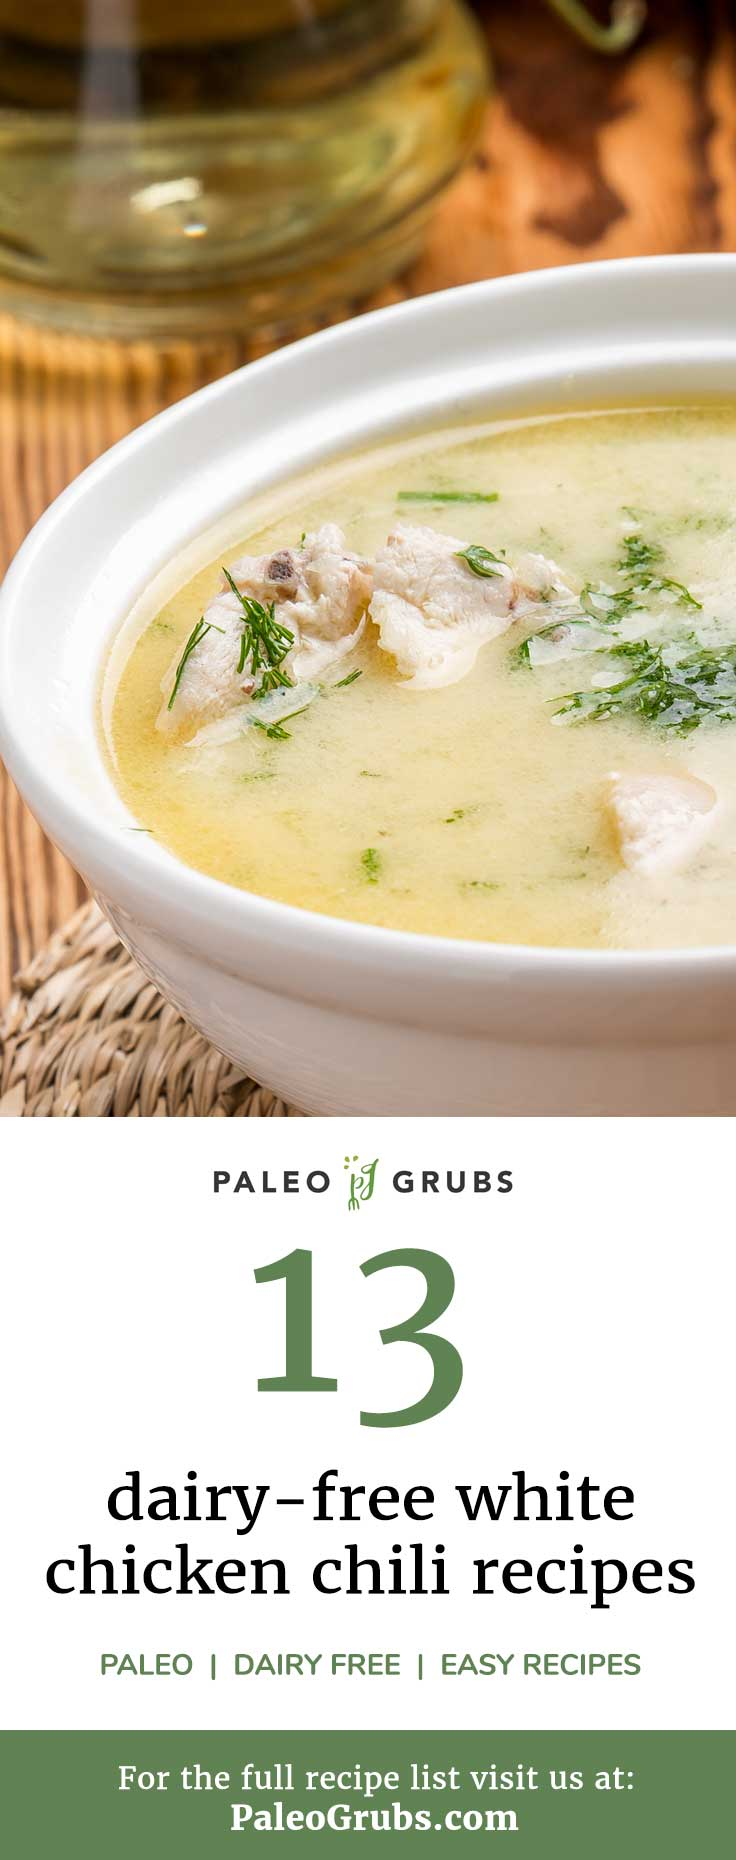 Making a white chili is a bit of an art form, so it's OK to borrow inspiration from these white chili recipes. They'll show you how to keep it Paleo but tantalize the taste buds.